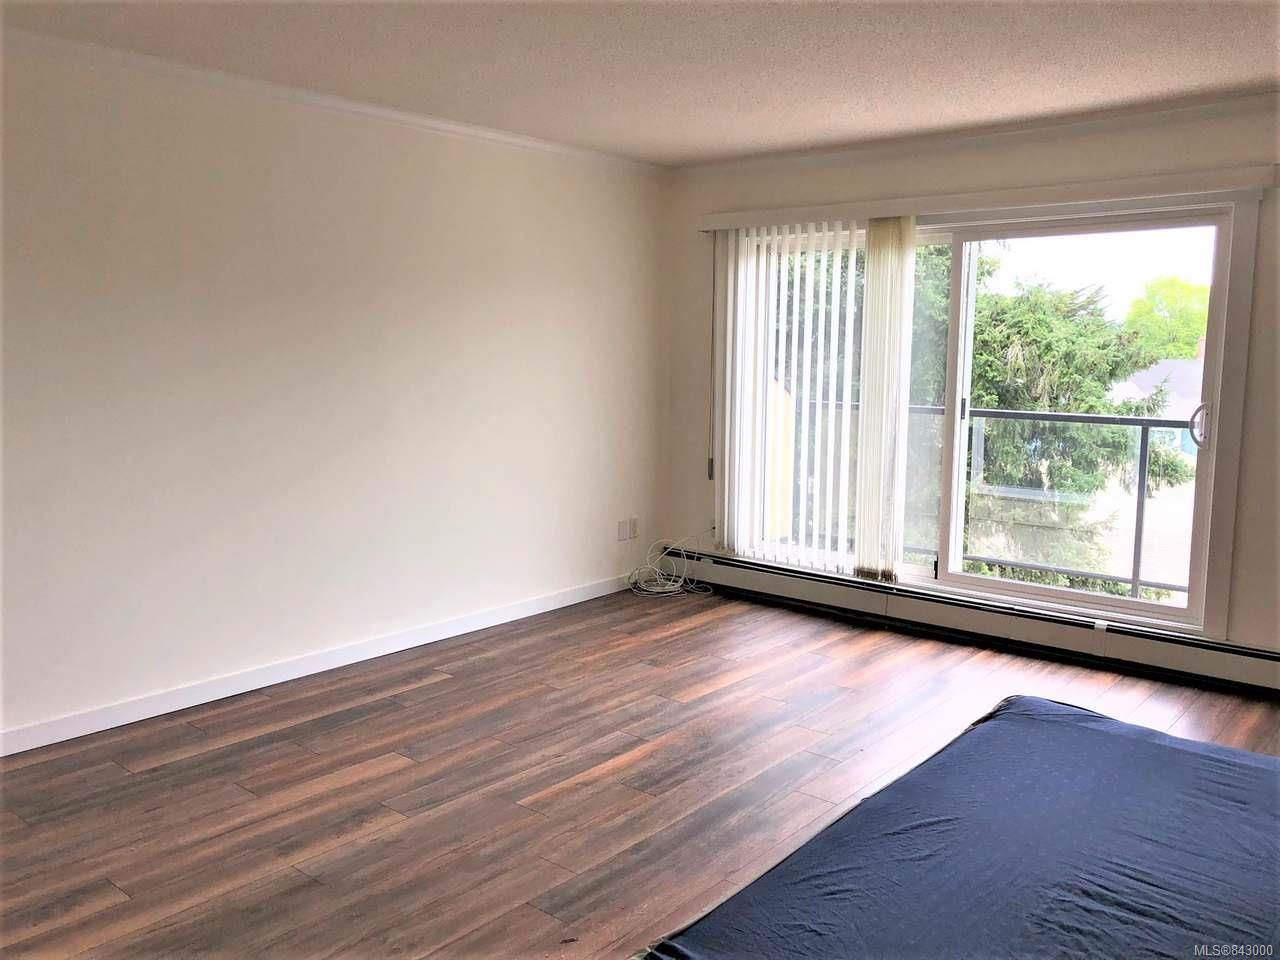 Photo 5: Photos: 405 255 W Hirst Ave in PARKSVILLE: PQ Parksville Condo for sale (Parksville/Qualicum)  : MLS®# 843000